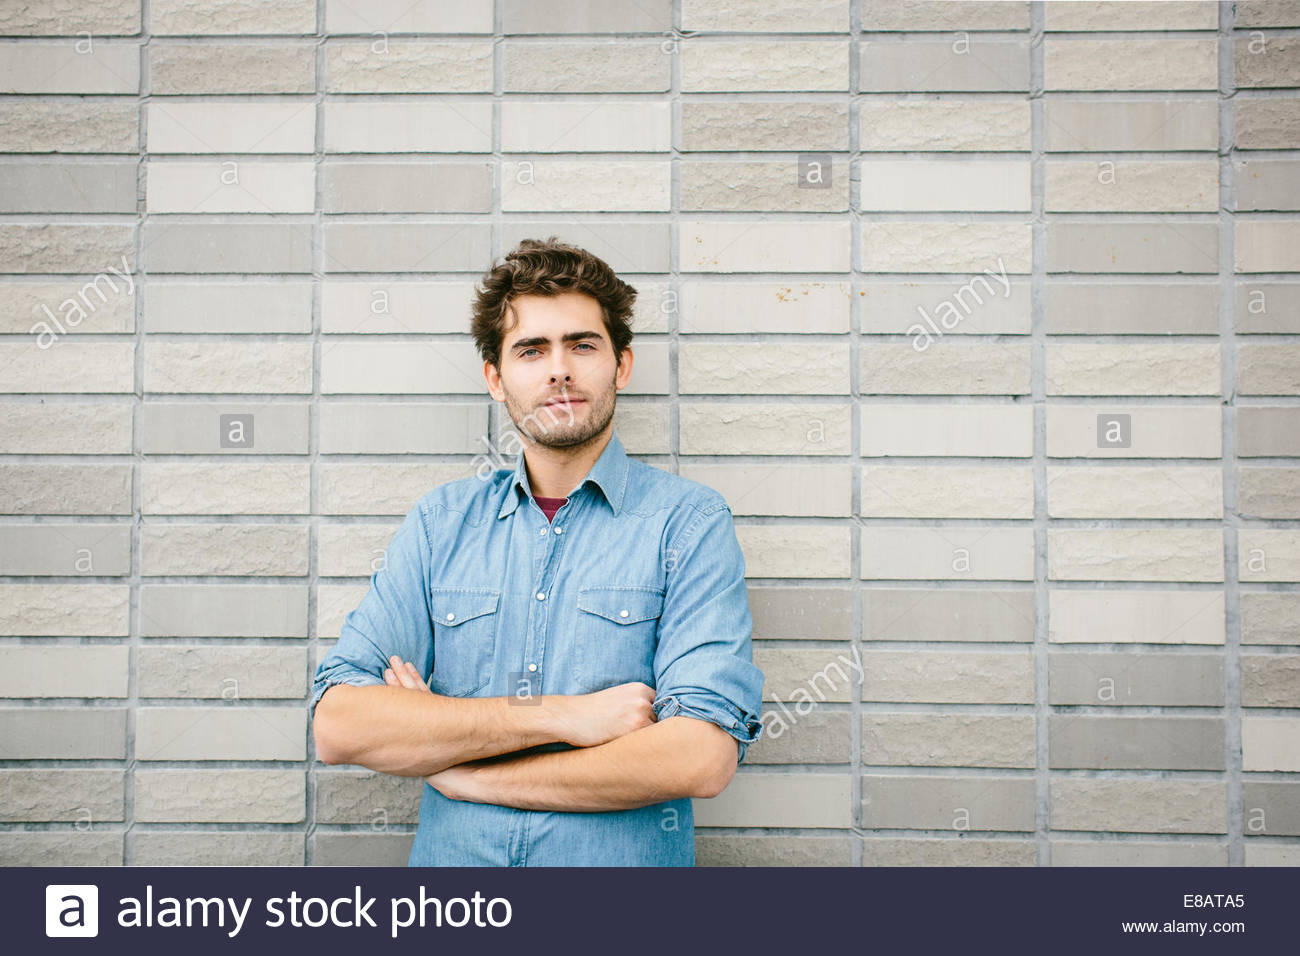 Young man wearing denim shirt by brick wall, portrait - Stock Image